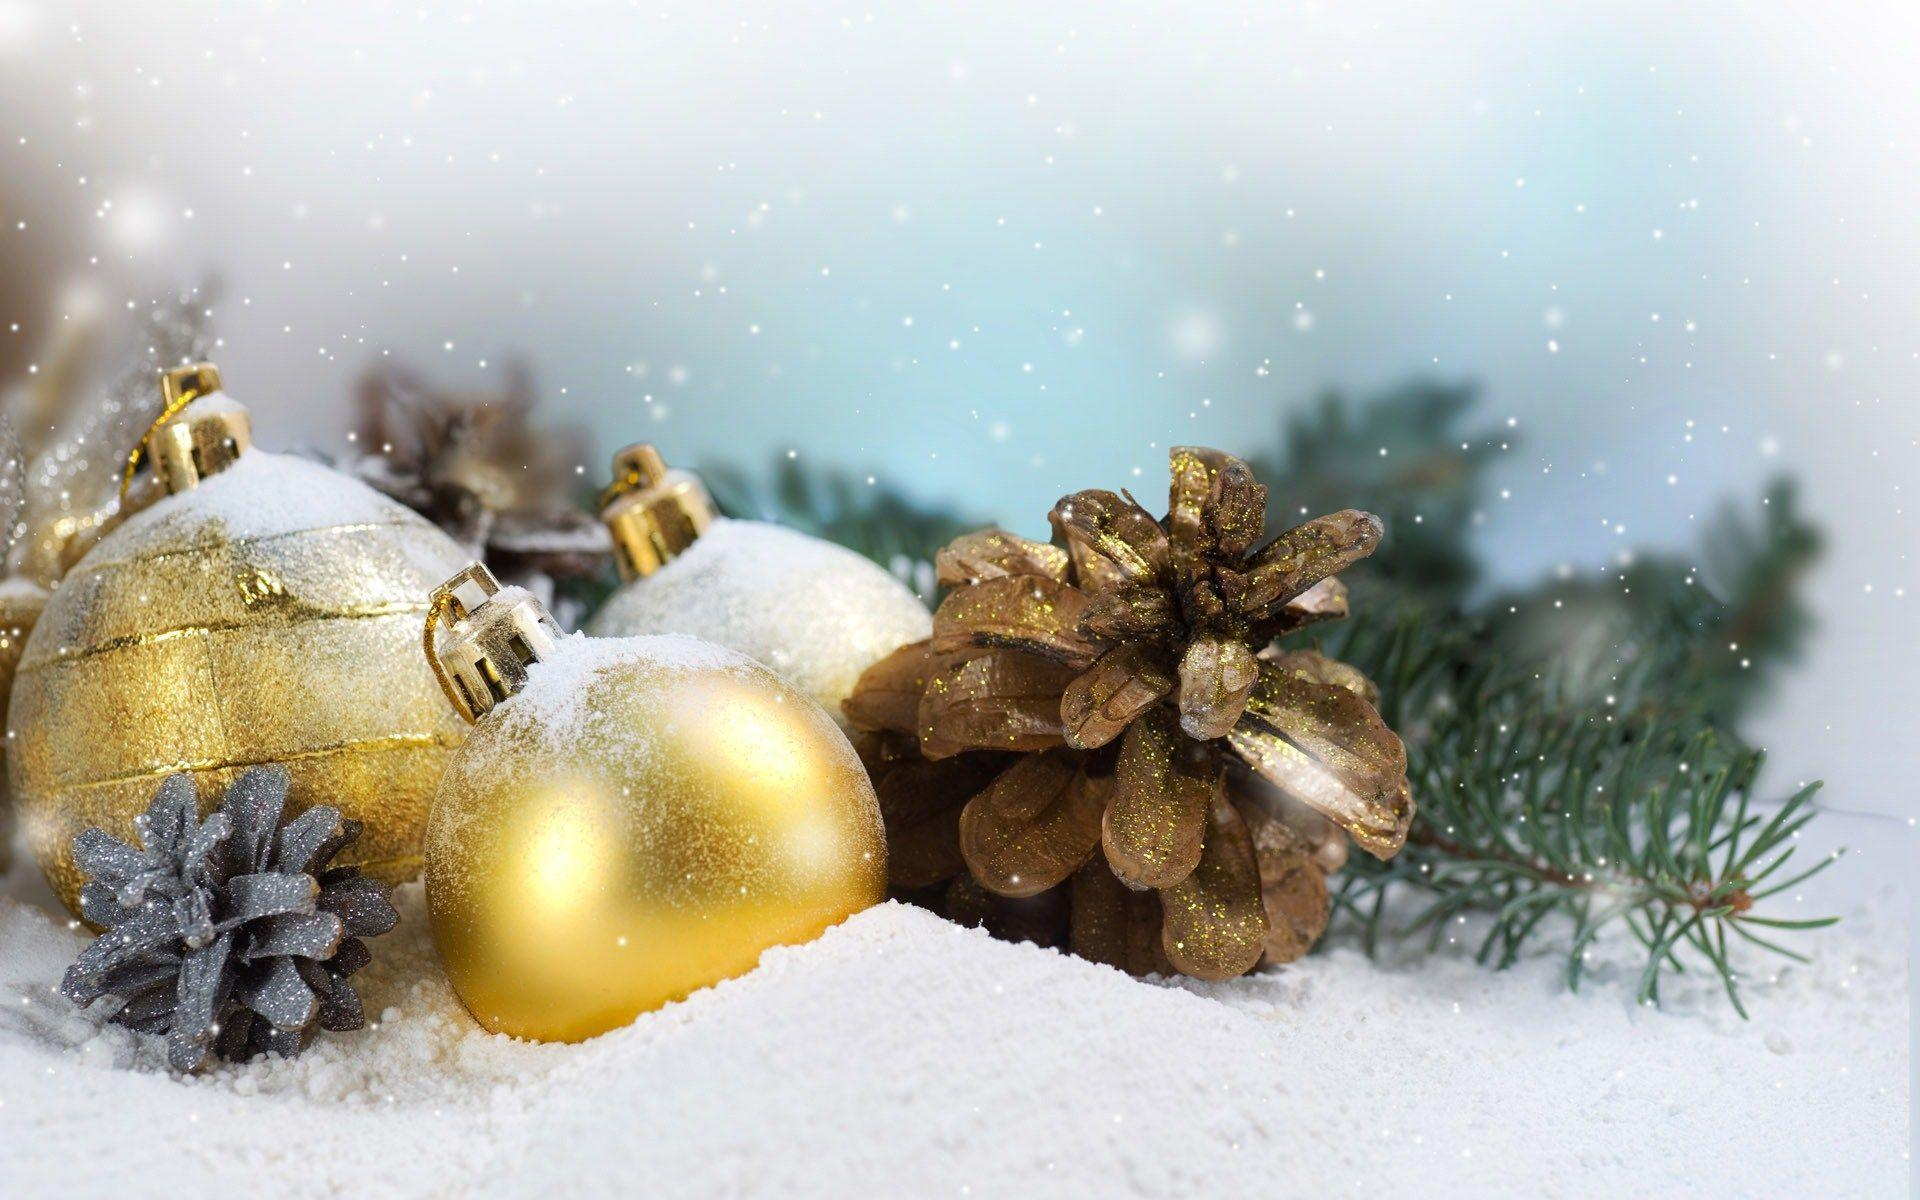 Christmas Snow HD Wallpapers - HD Wallpapers Inn